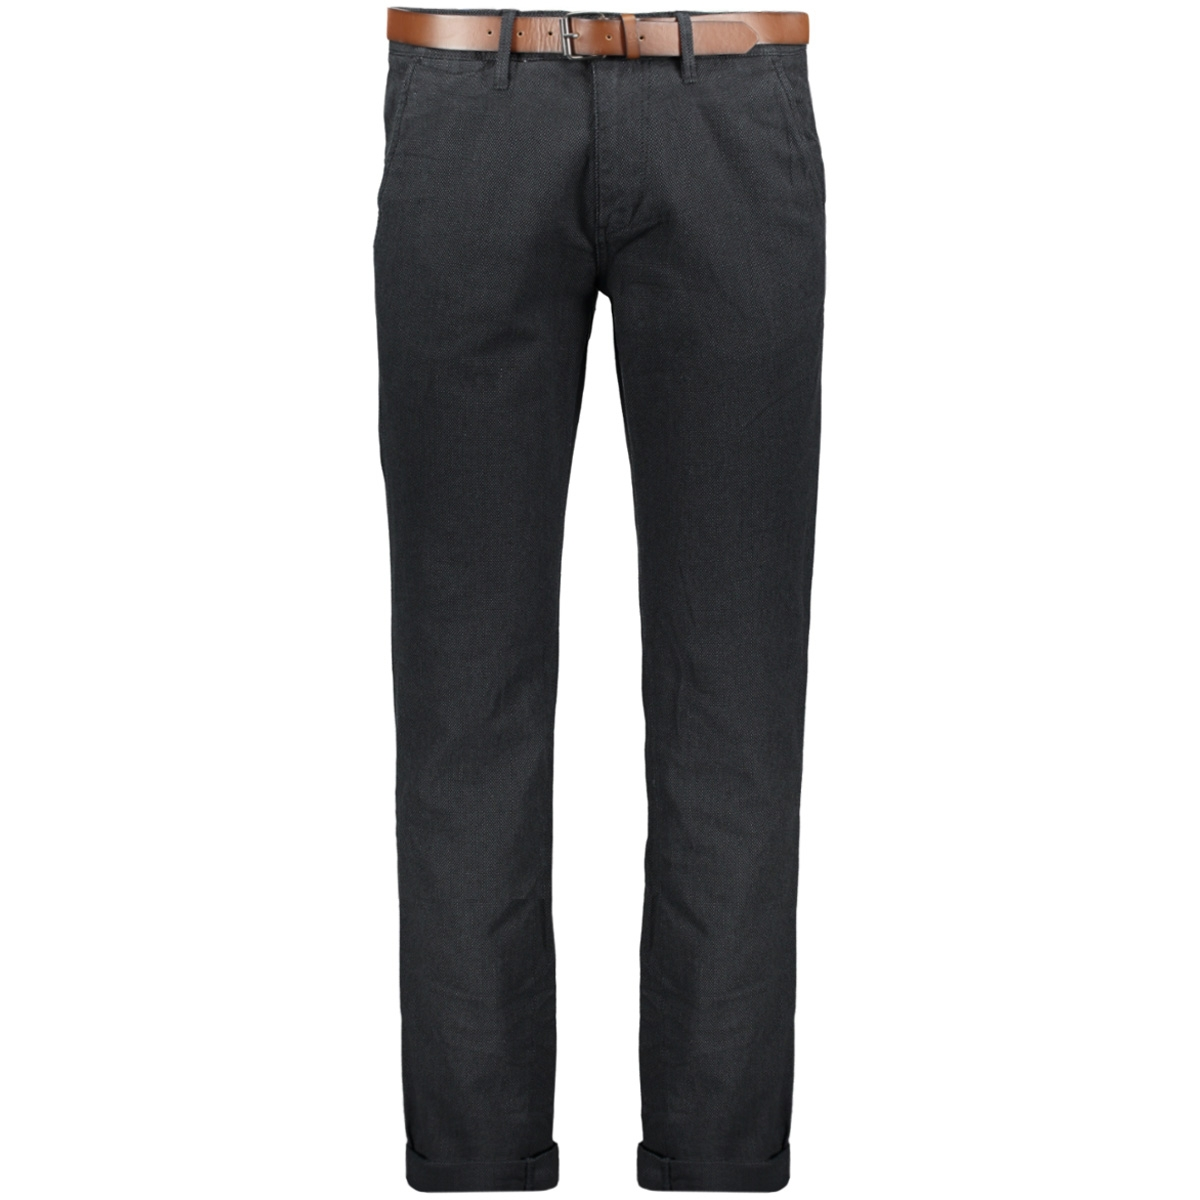 6455000.09.12 tom tailor broek 2999